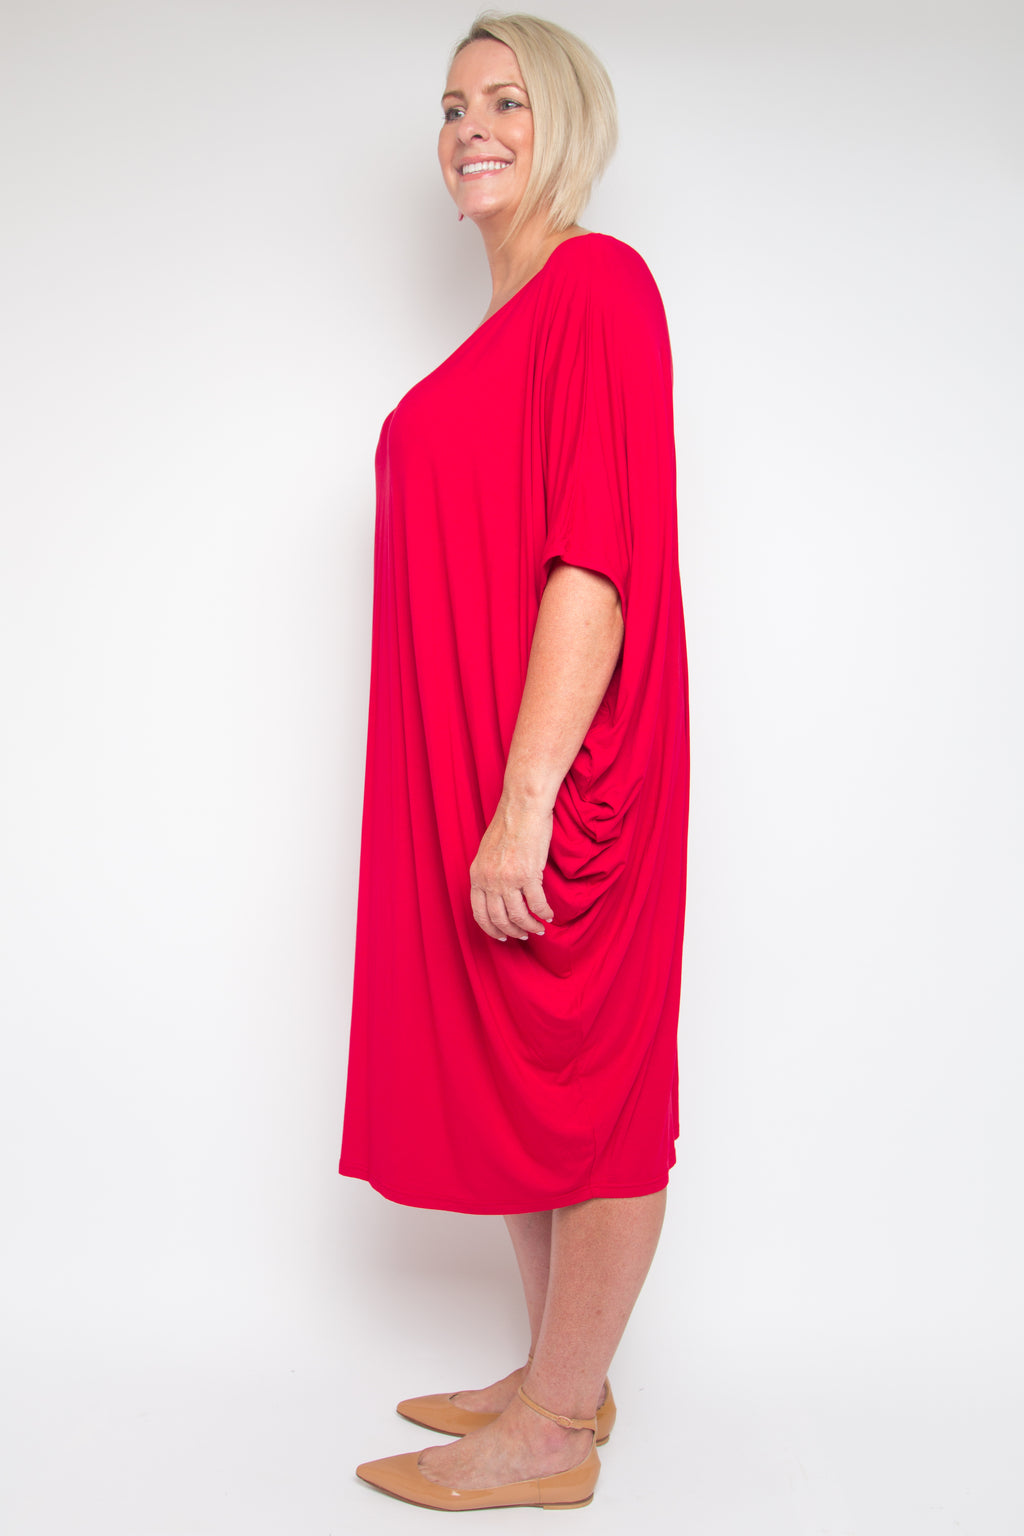 Curve Original Miracle Dress in Cherry Soda (bamboo)